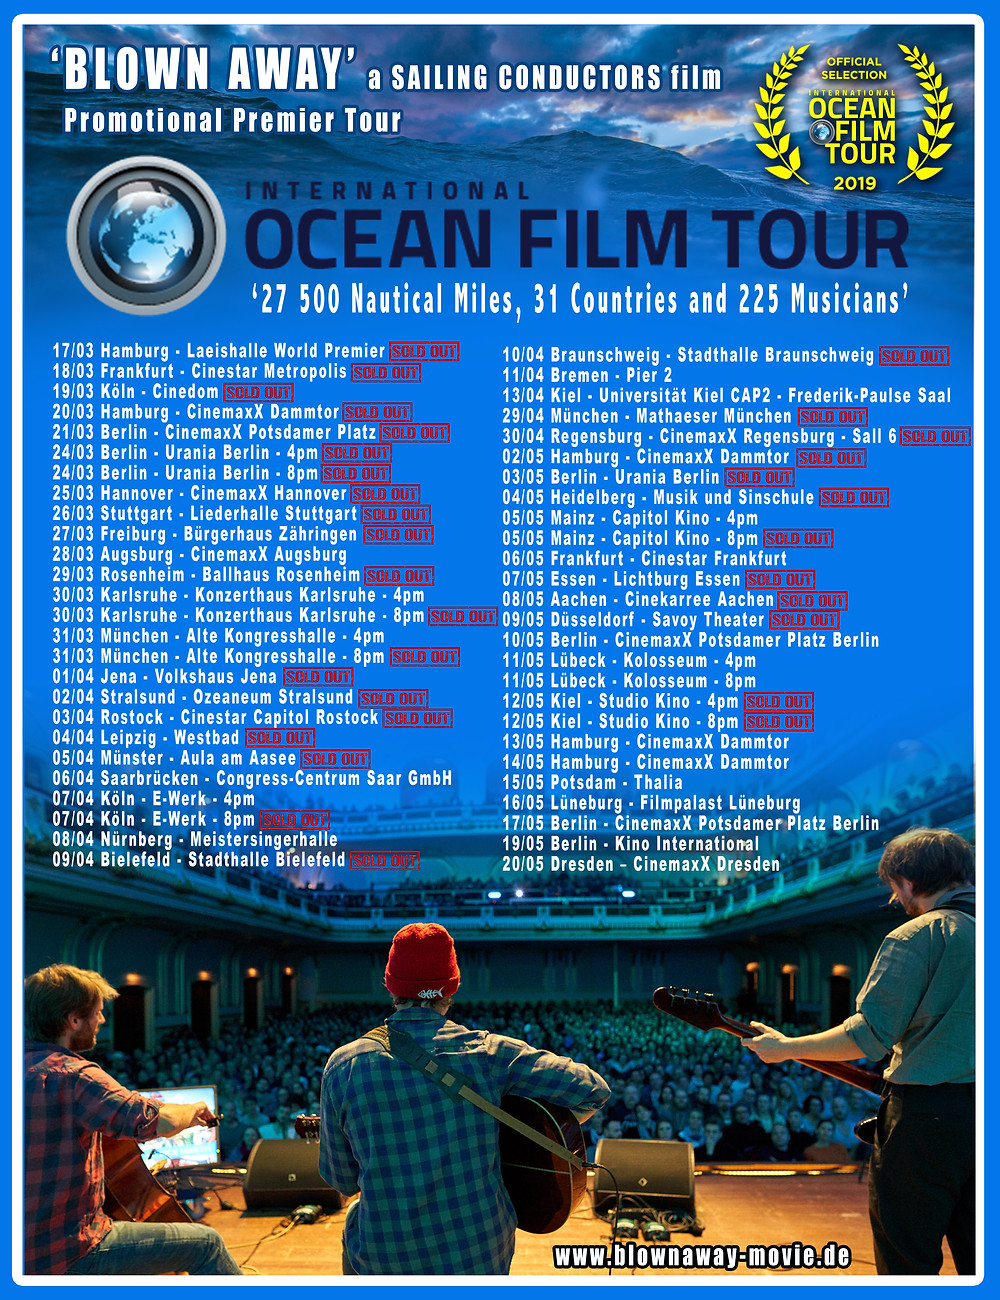 52 shows announced across the German landscape. Tickets @ https://de.oceanfilmtour.com/de/tickets